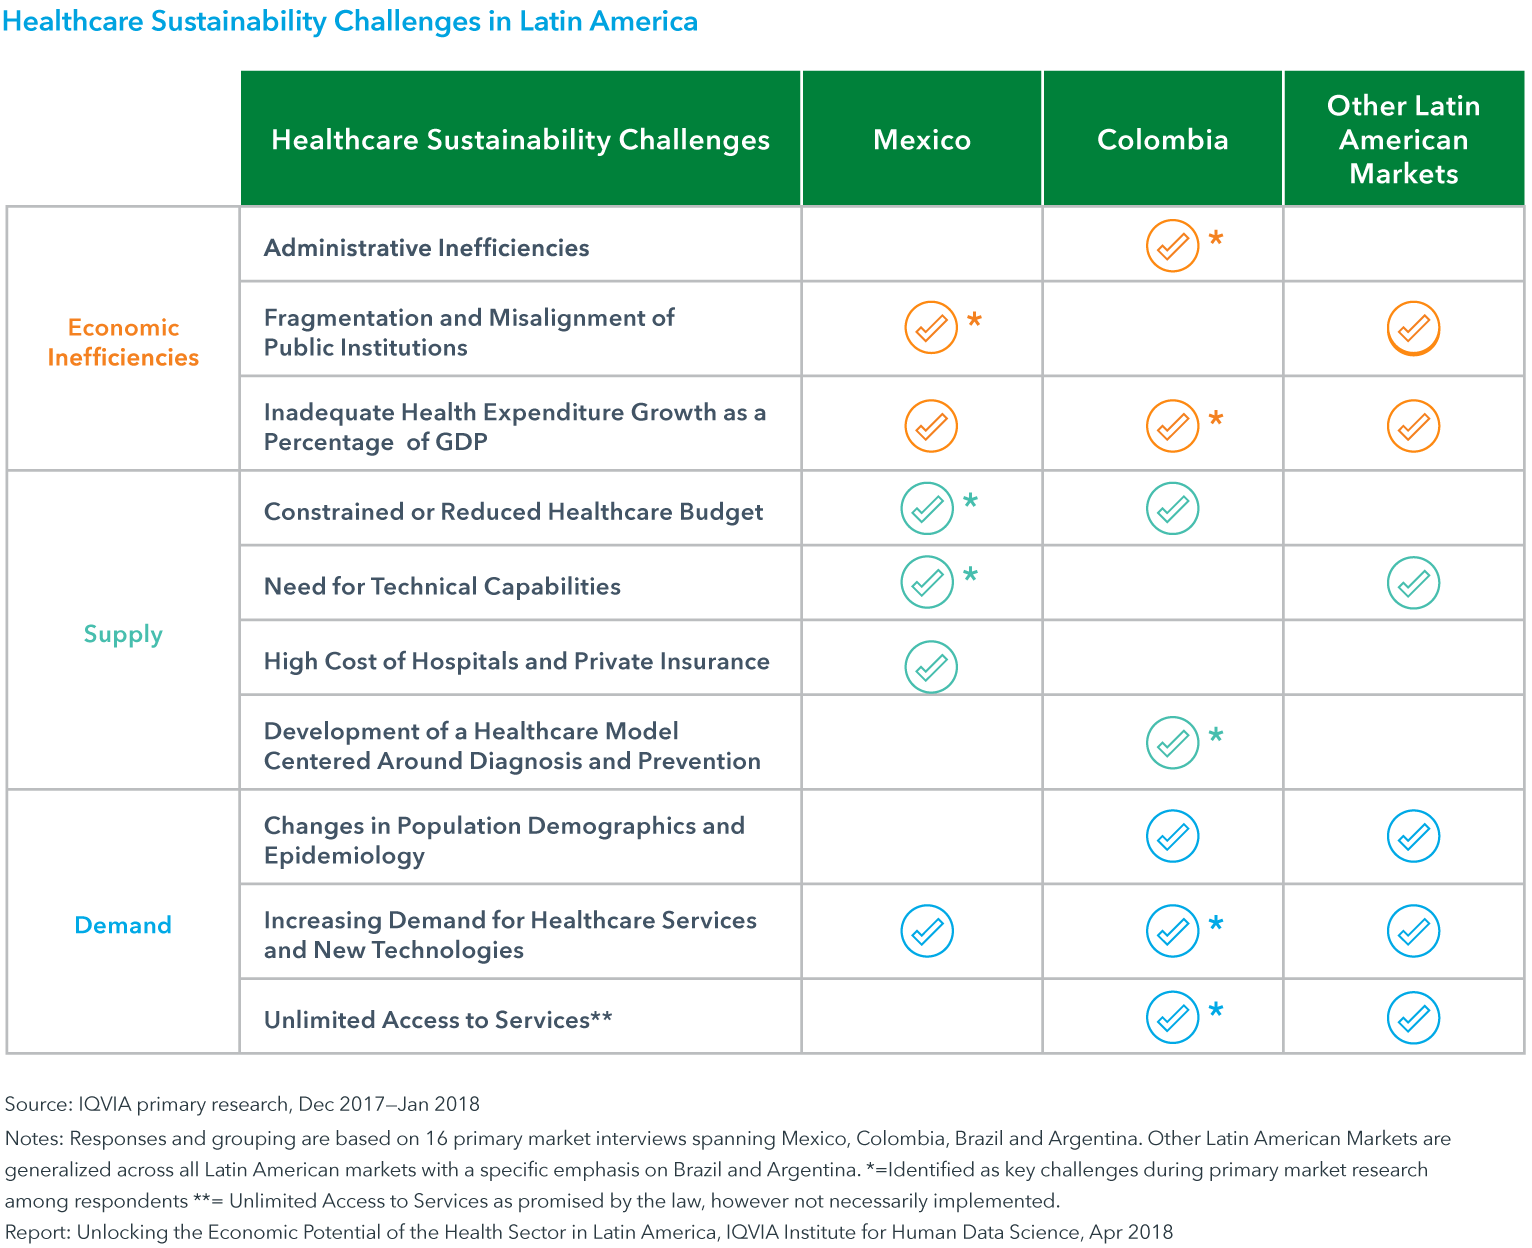 Chart 4: Healthcare Sustainability Challenges in Latin America